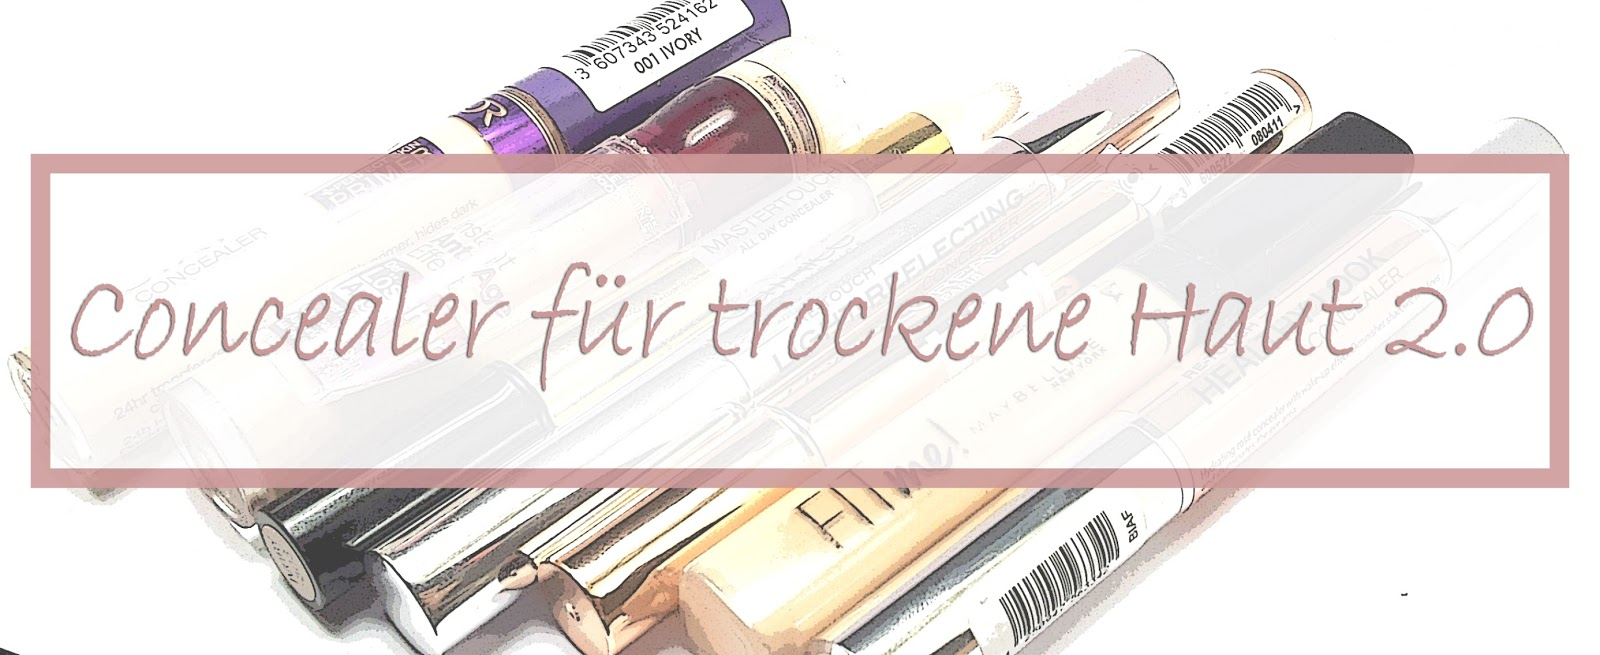 the life in front of my eyes concealer fà r trockene haut 2 0